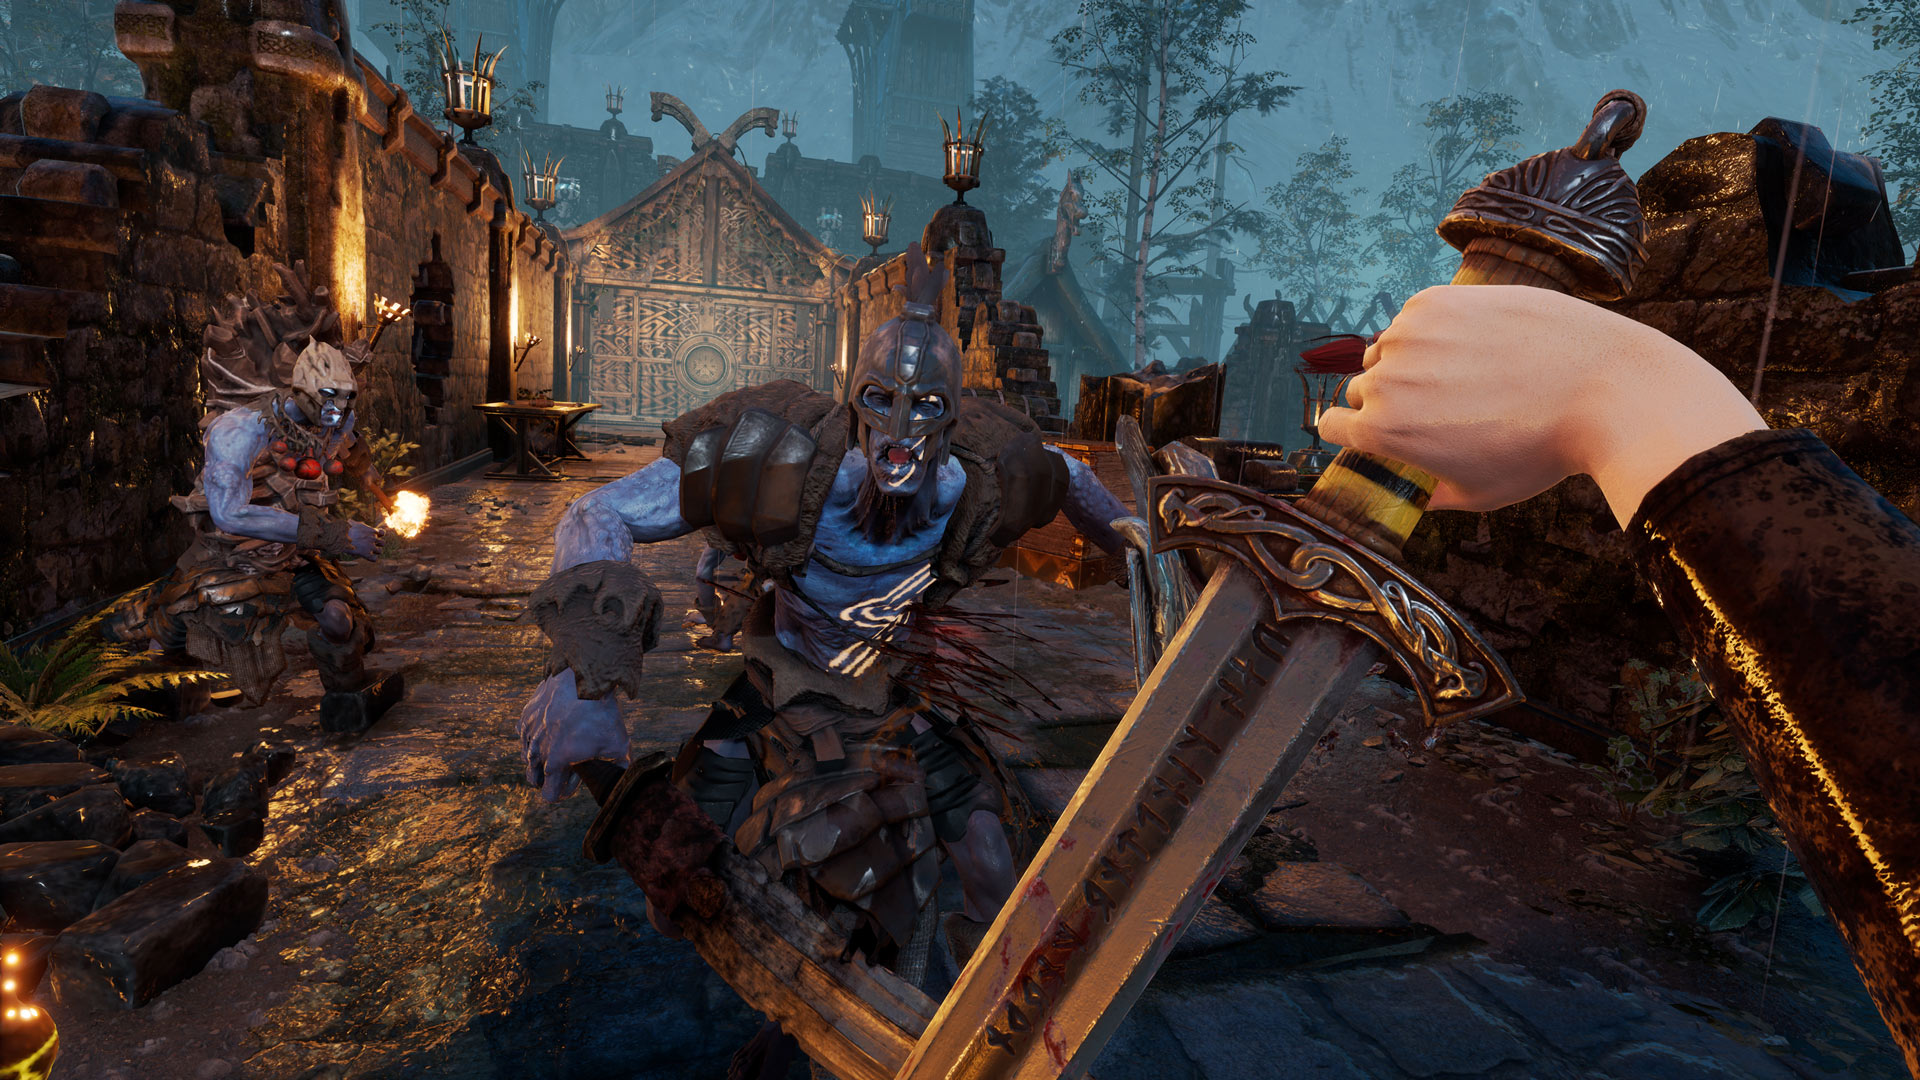 New 'Asgard's Wrath' Gameplay Video Reveals Dungeon Crawling in Motion 10